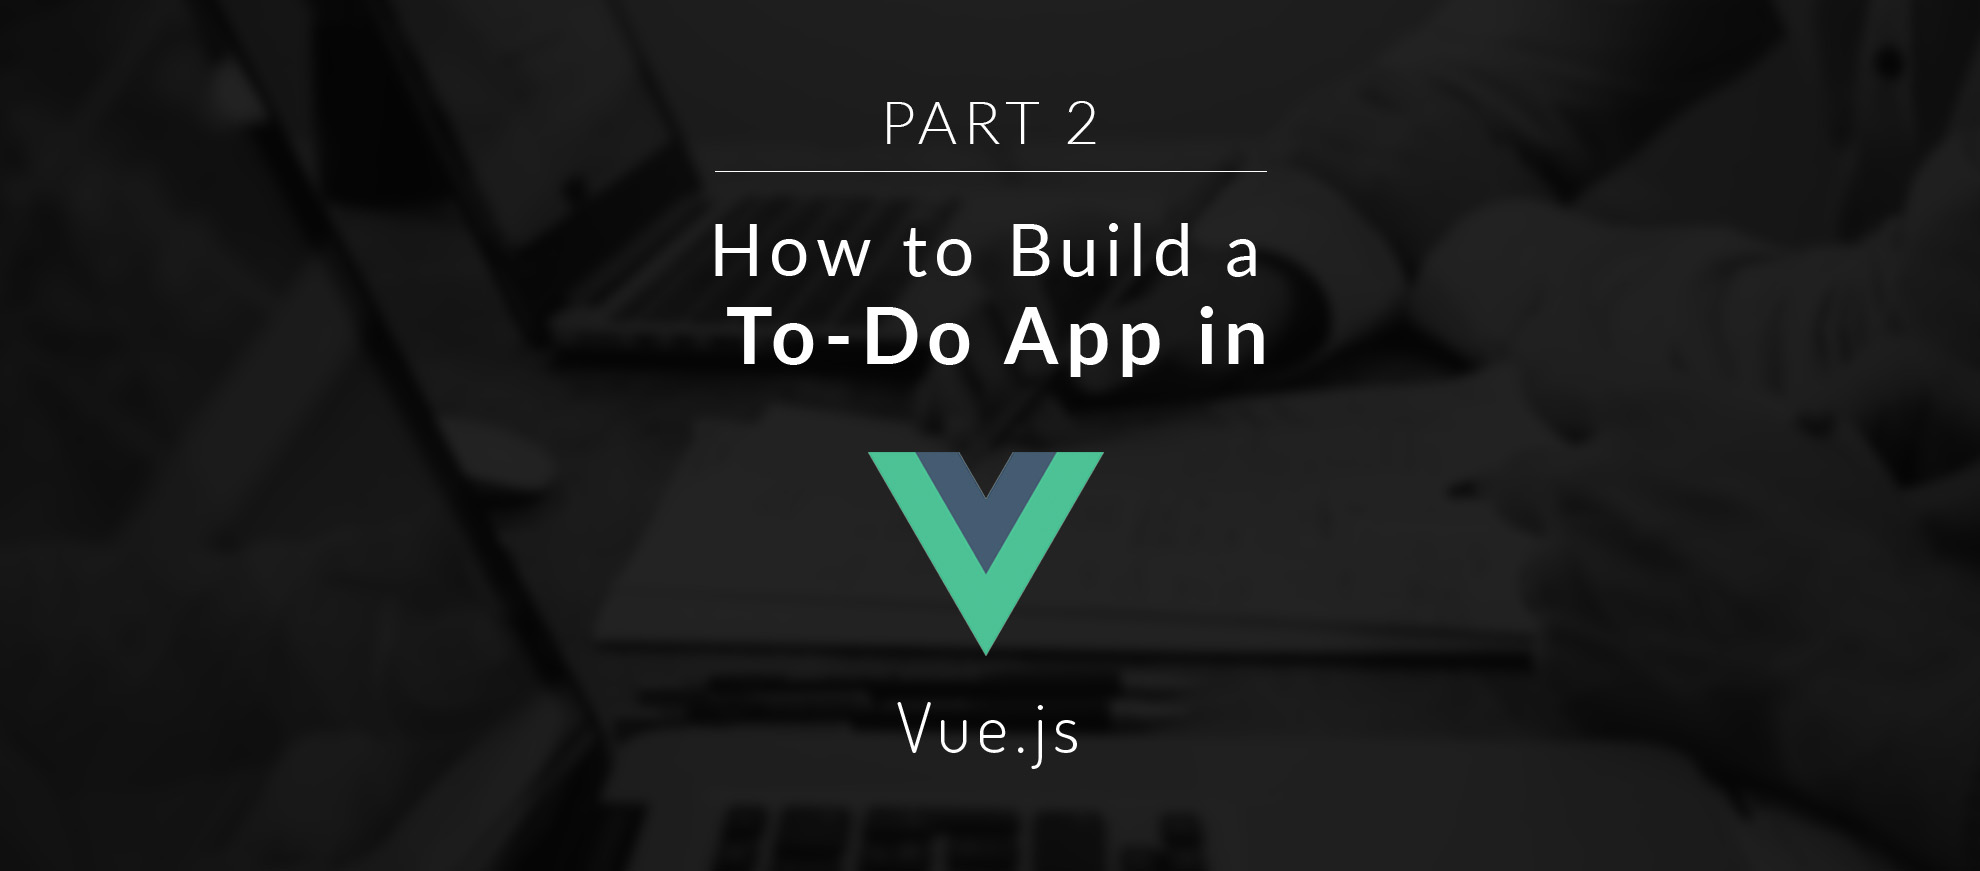 How to Build a To-Do App in Vue.js - Part 2